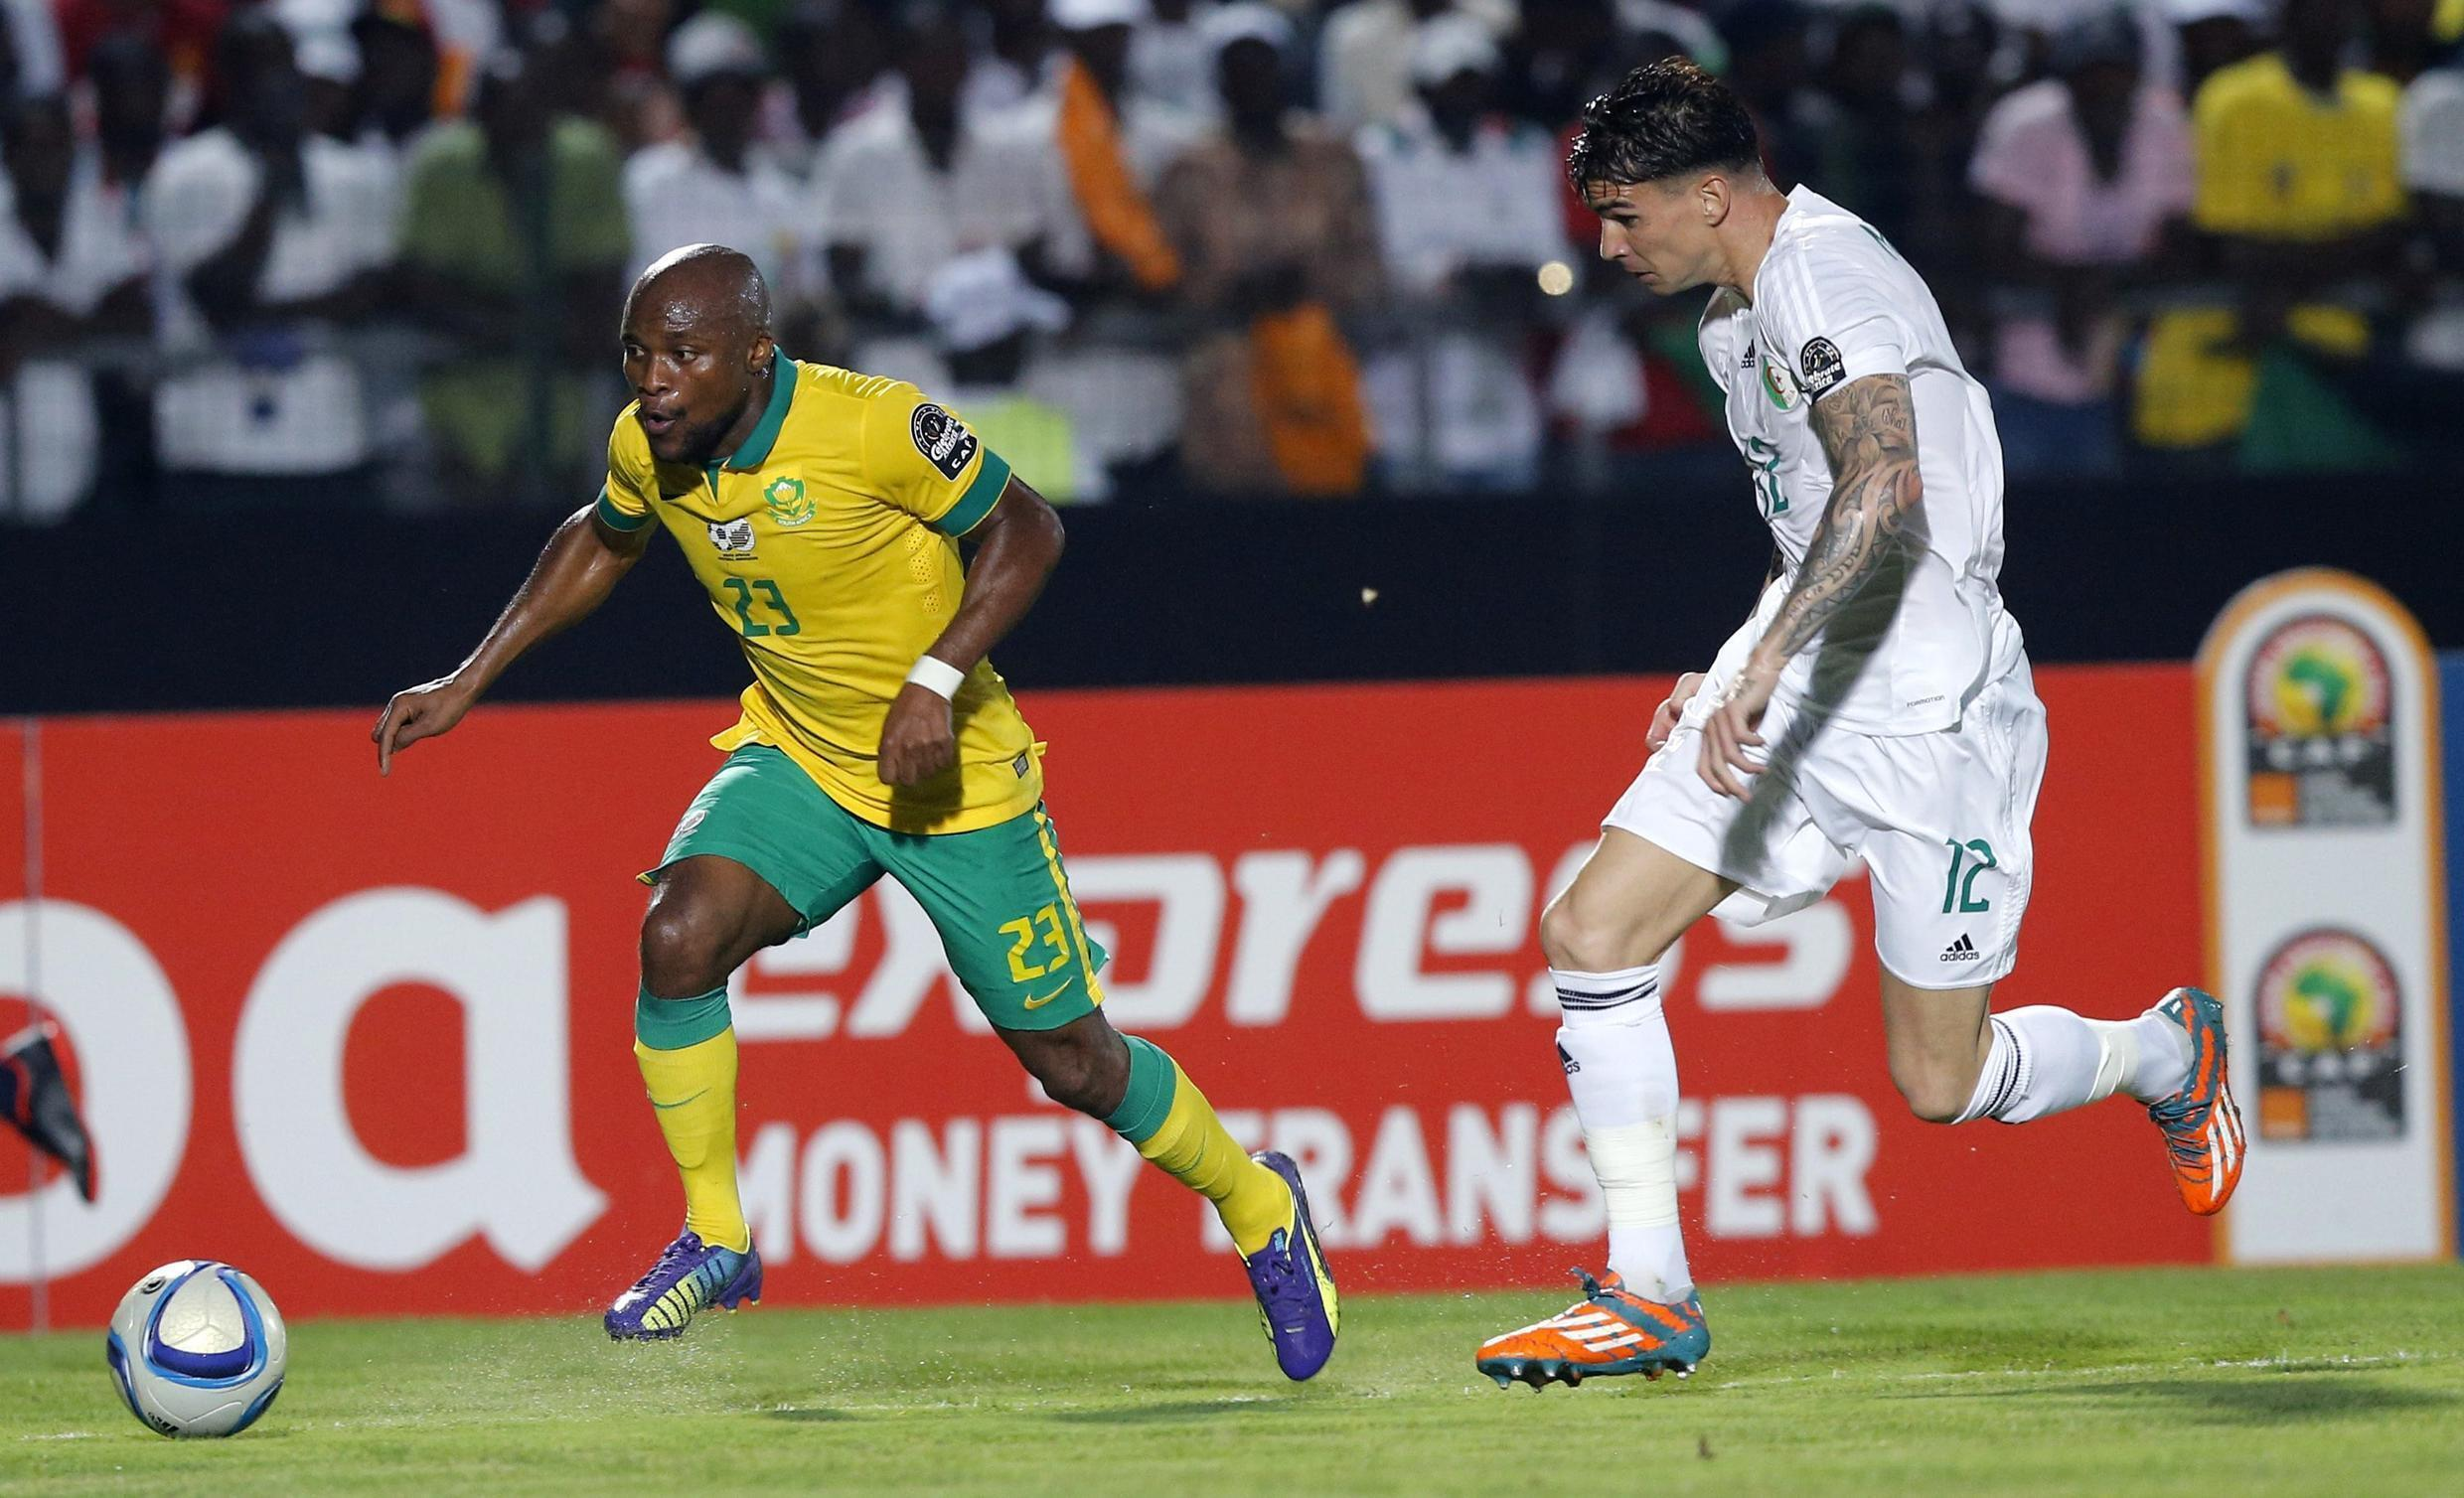 South Africa's Tokelo Rantie challenges Algeria's Carl Medjani during their match in Mongomo on 19 January, 2015